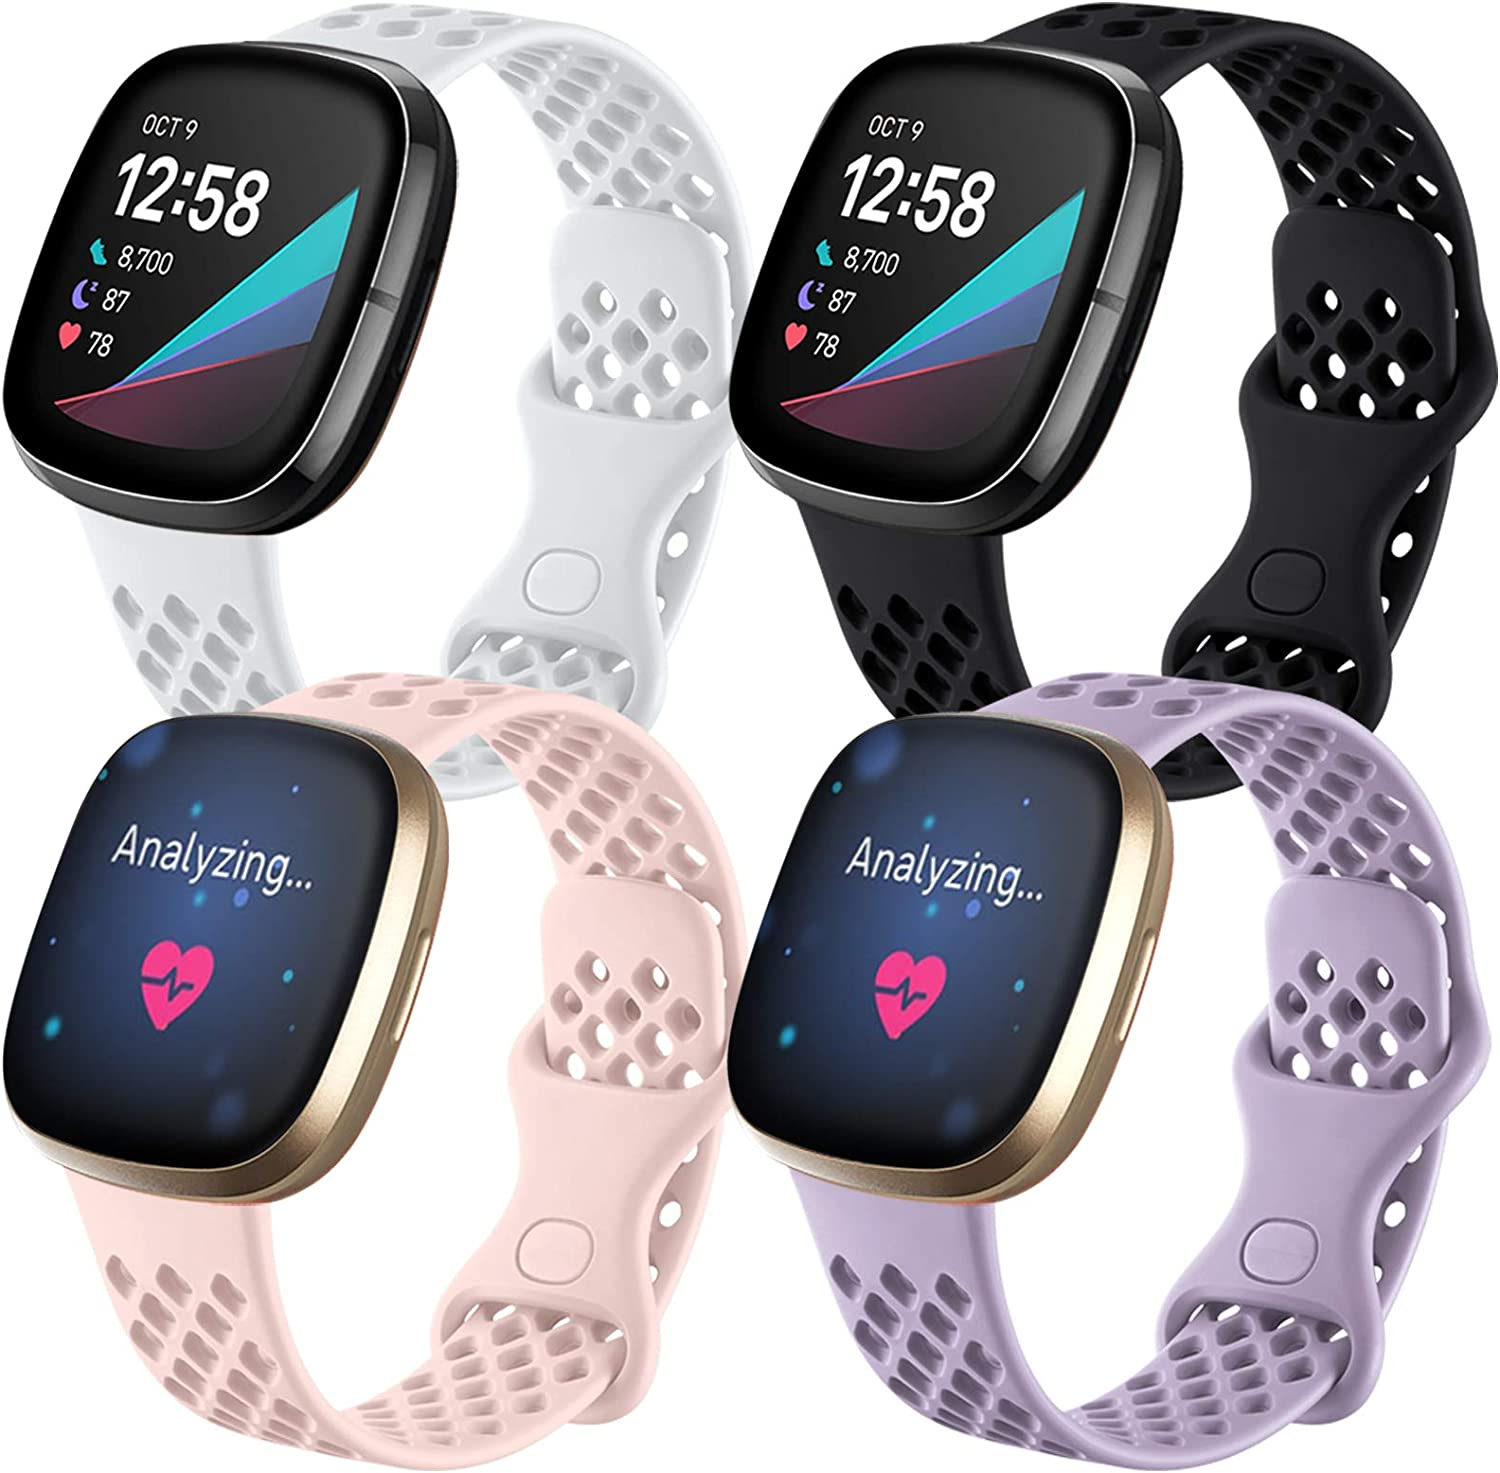 Maledan Compatible with Fitbit Sense and Versa 3 Bands for Women Men, Breathable Sport Band Replacement Wristbands Accessories Waterproof Strap with Air Holes, Small, 4-Pack Black/Pink/White/Lavender